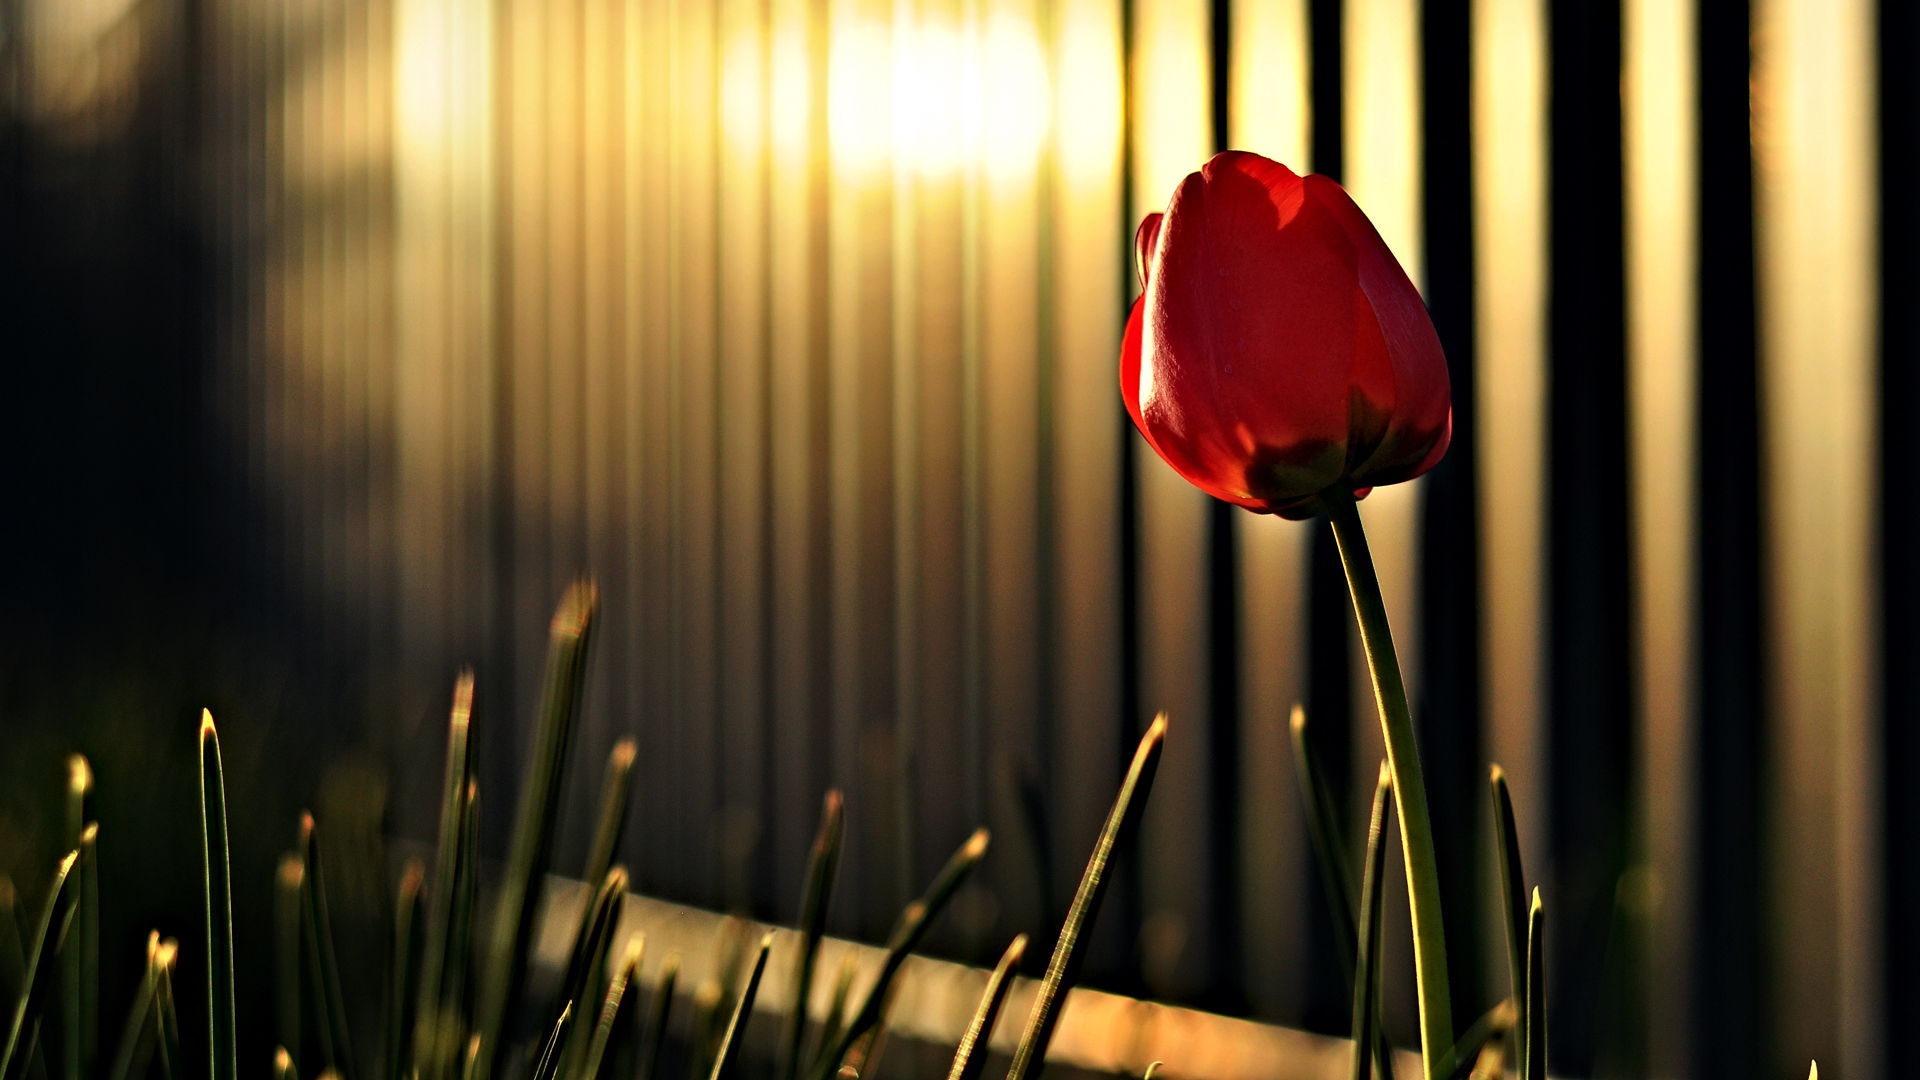 Red Flower Hd Wallpapers For Desktop Widescreen Wallpaper